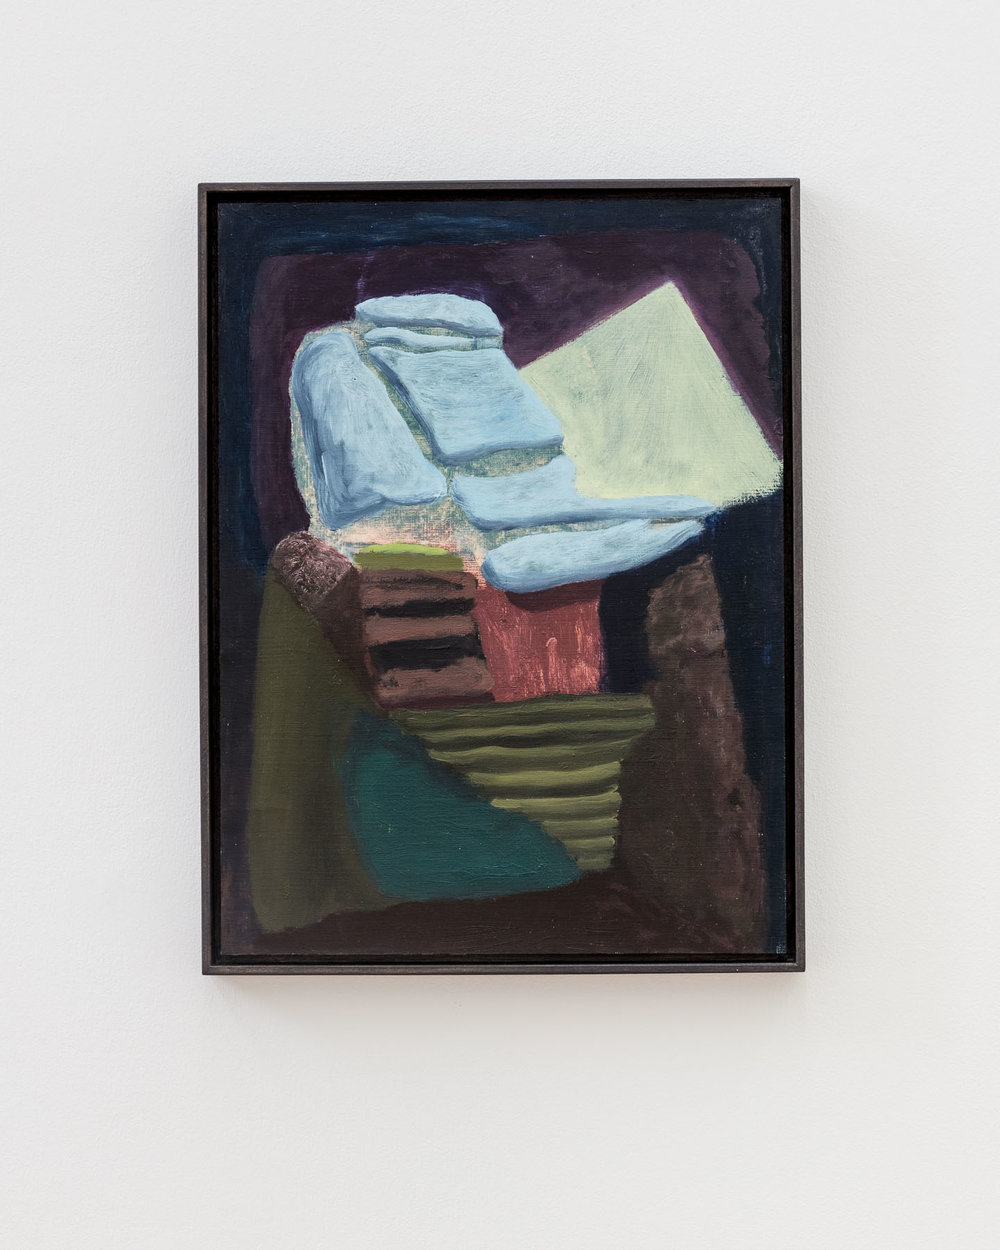 Veronika Hilger, untitled, 2016, oil on paper, 40 x 30 cm